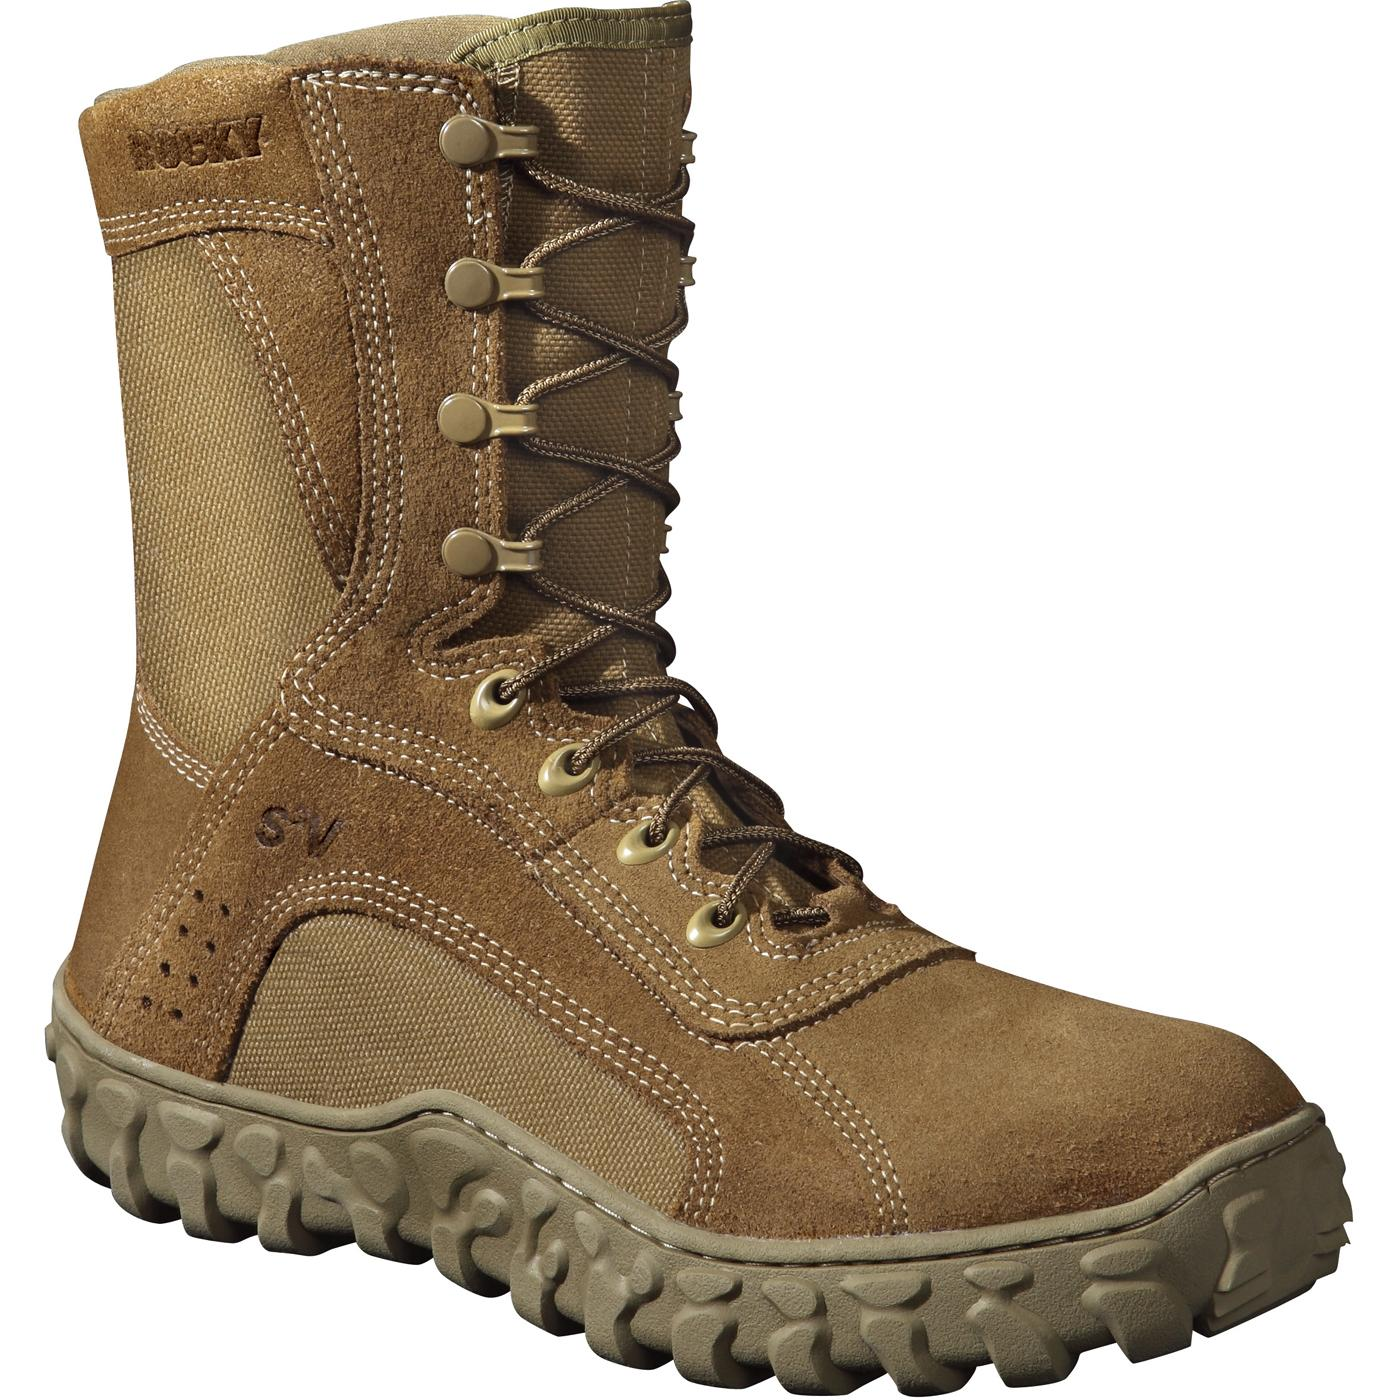 5e12f752d02 Rocky Military Boots on Sale - Free Size Exchange